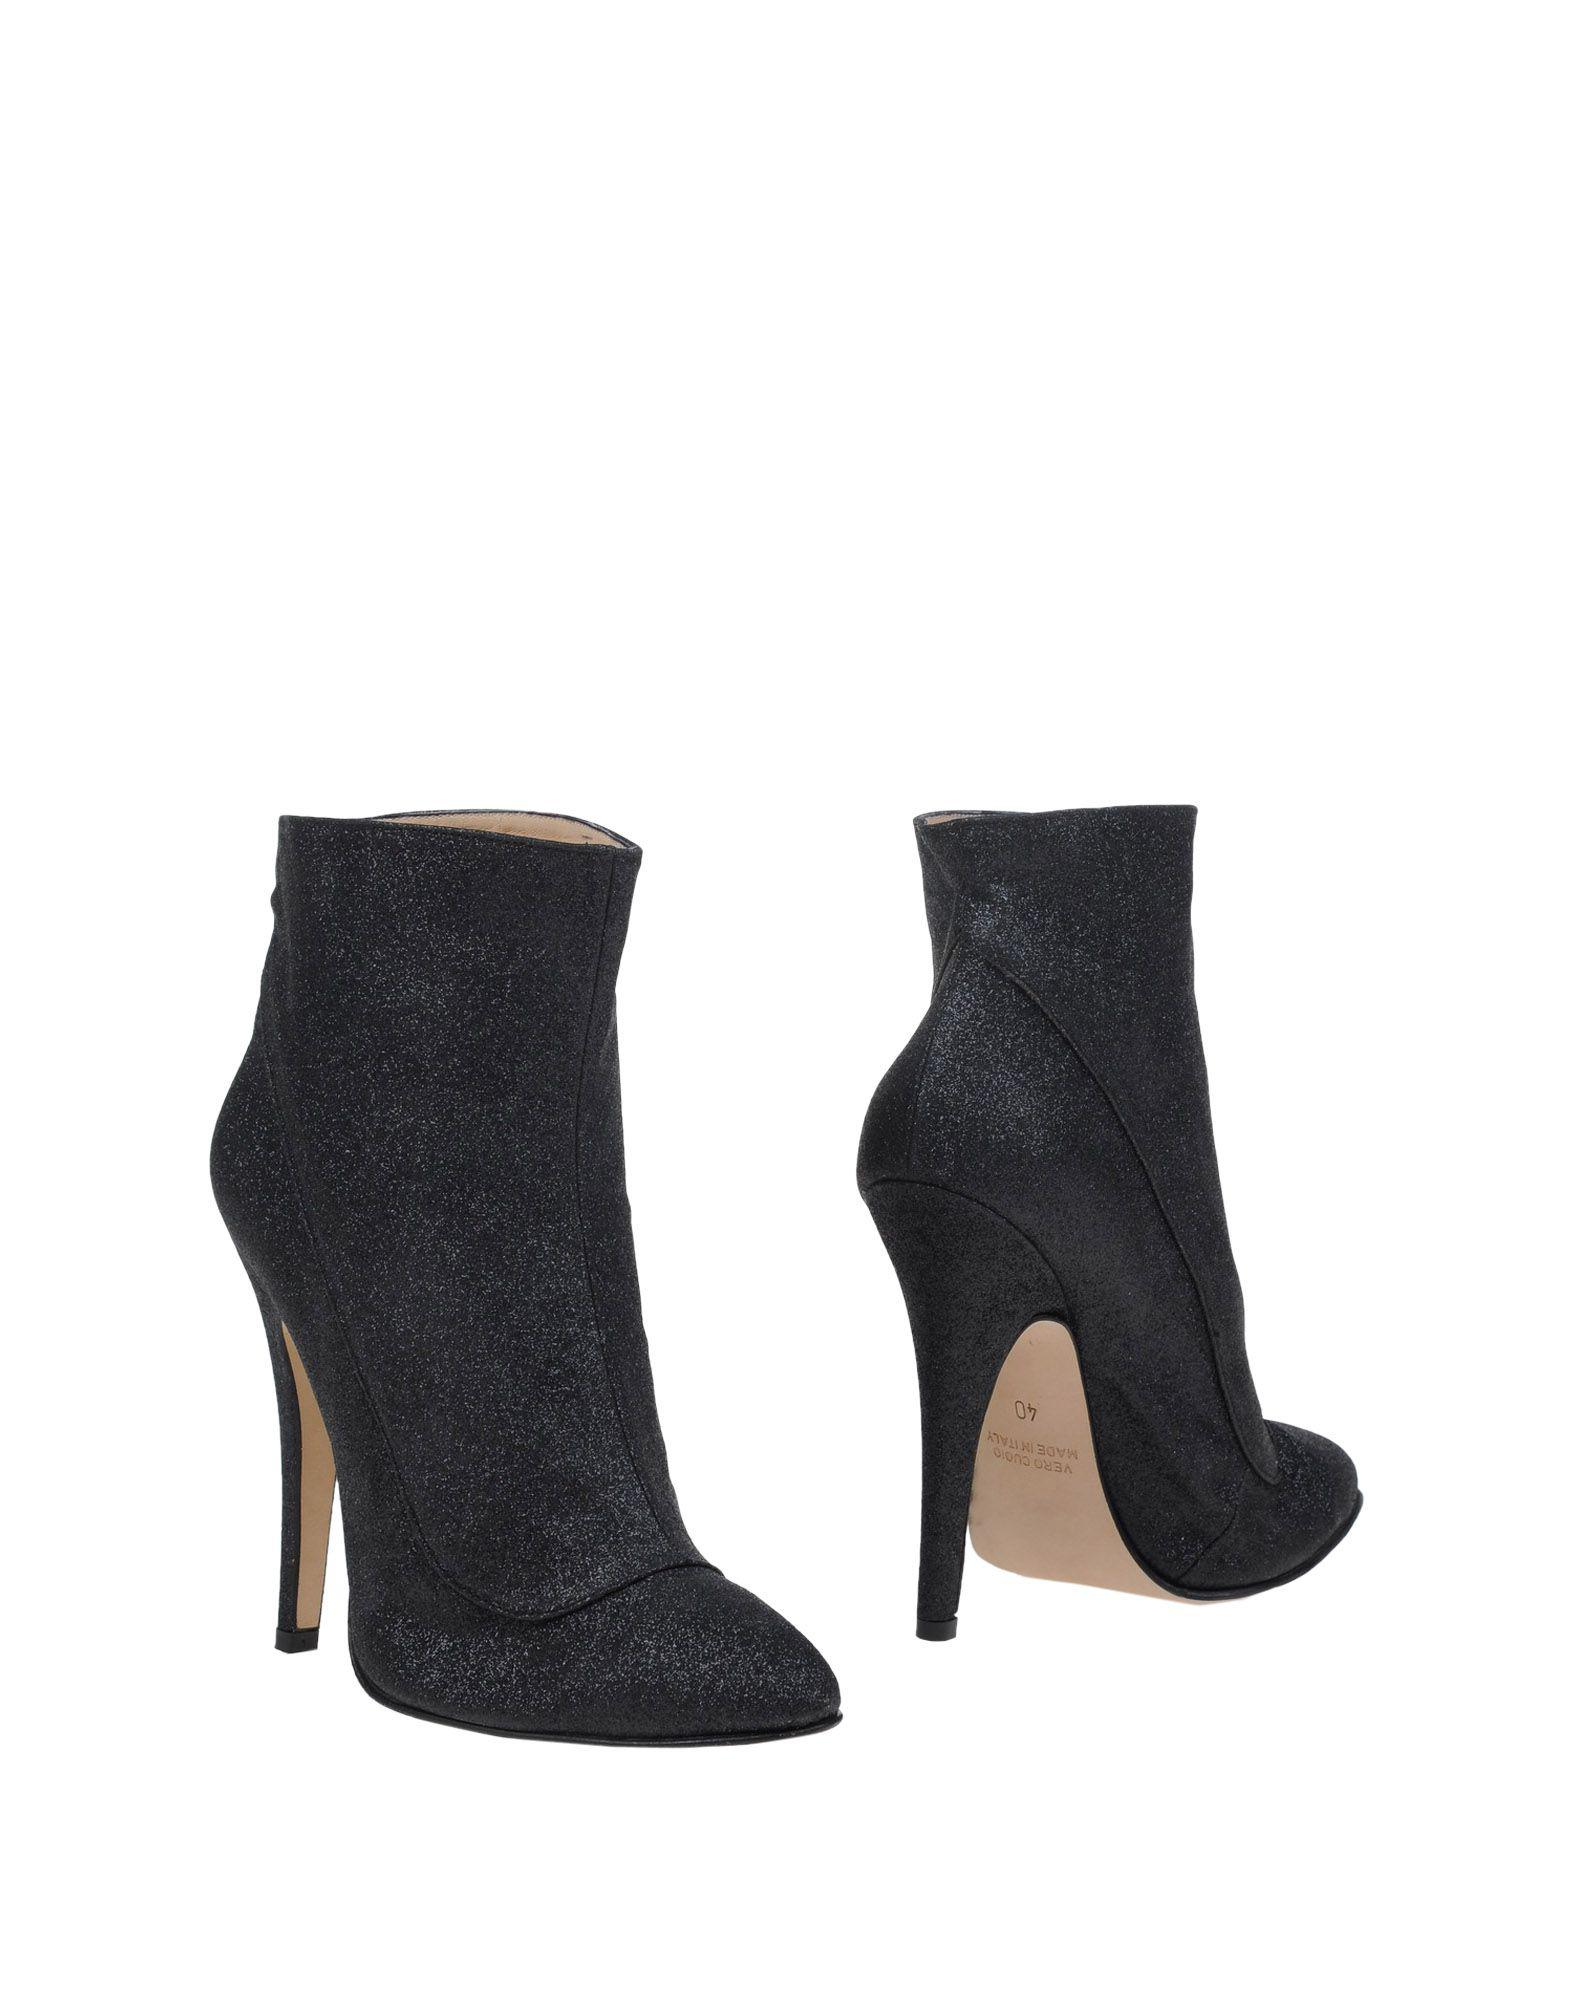 BLUMARINE Suede Ankle Boots h89P5